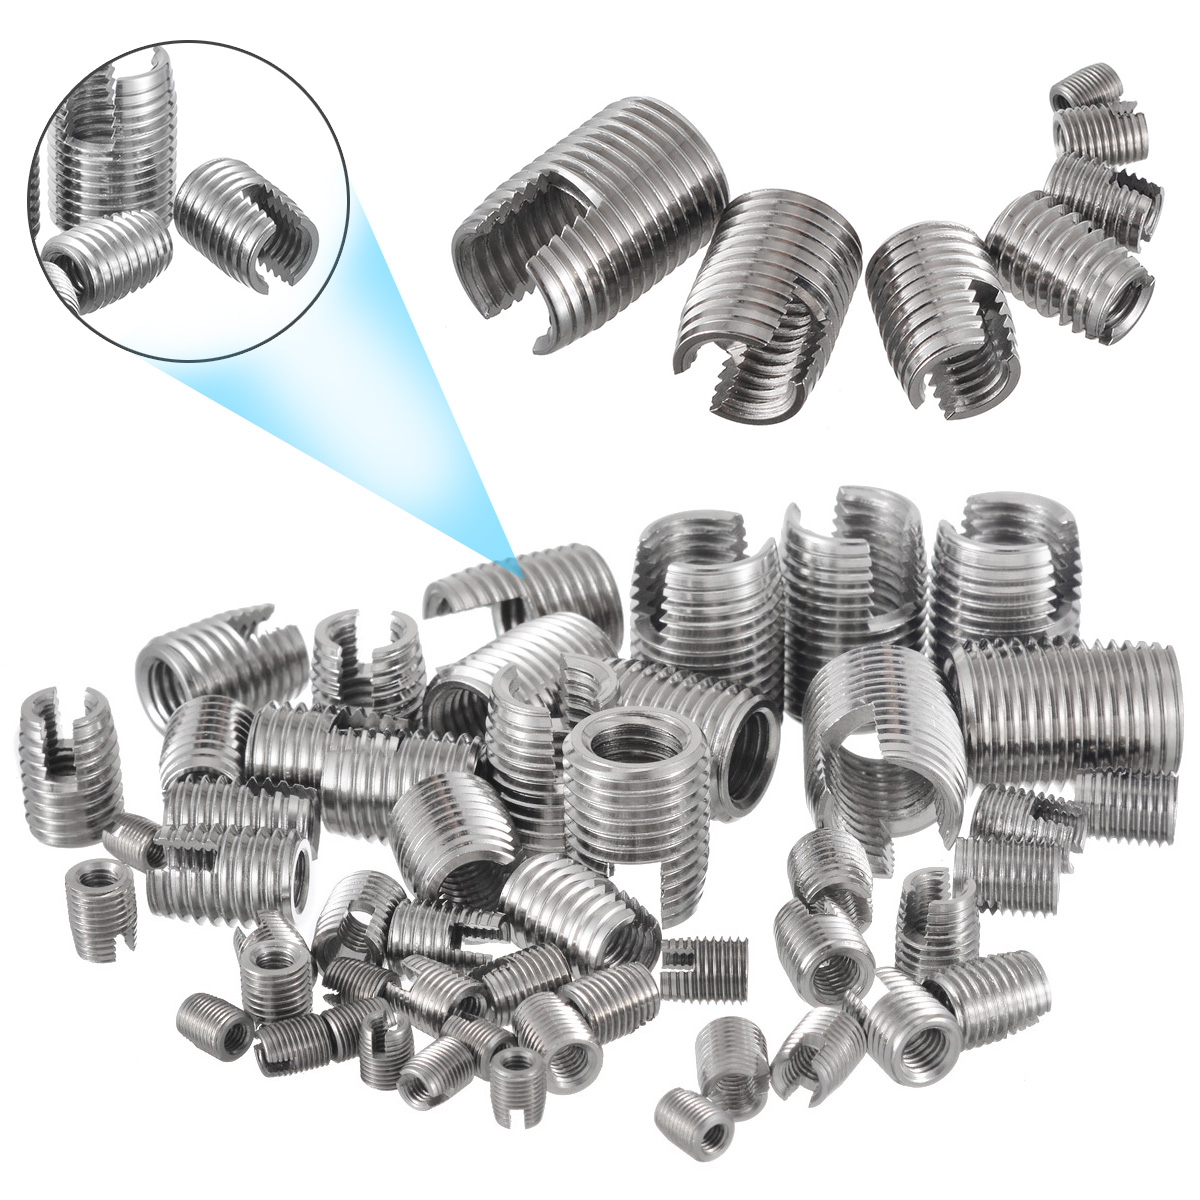 6 mm Installed Length E-Z Lok SK40220 Metric Helical Threaded Insert Kit Pack of 10 304 Stainless Steel M3-0.5 Thread Size